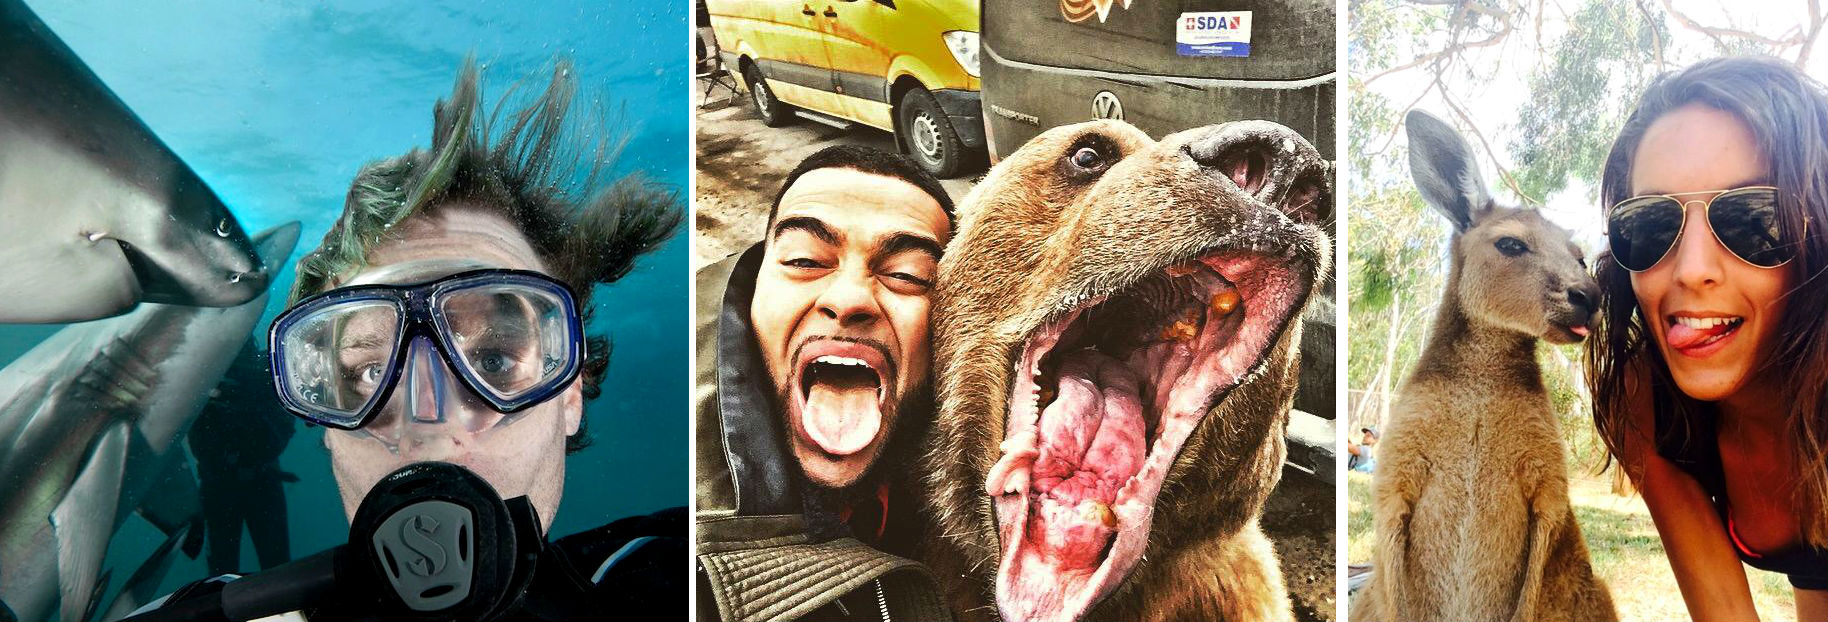 Snapping Selfies with Wild Animals Is a New Trend 1